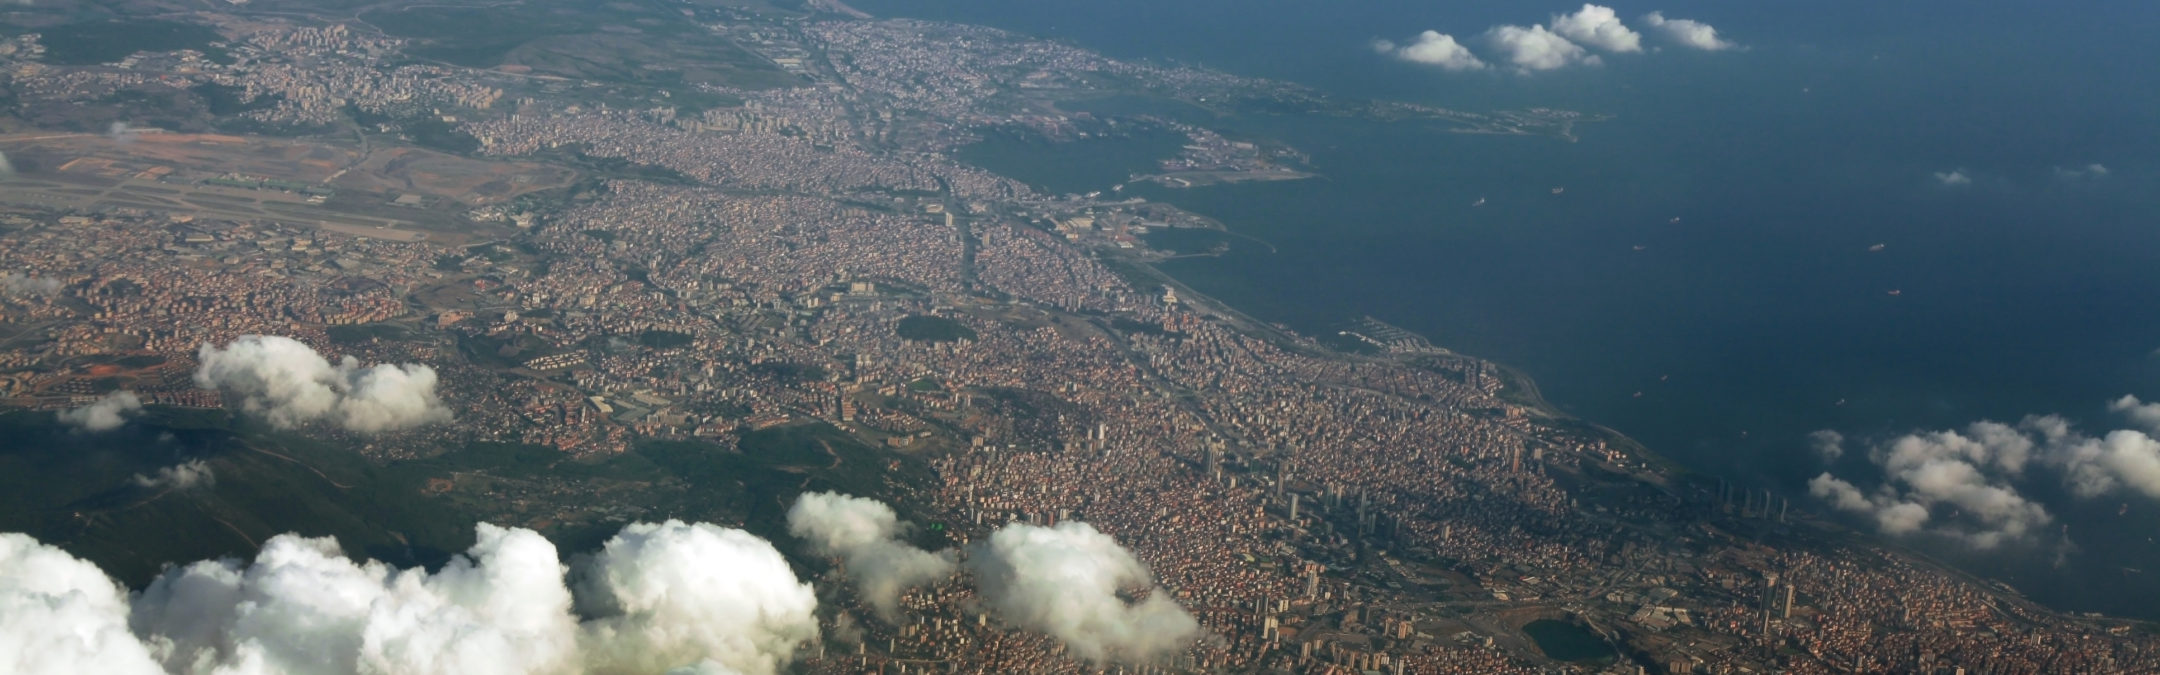 Istanbul under white partial clouds, with over 17 million population through a Bird's Eye View.